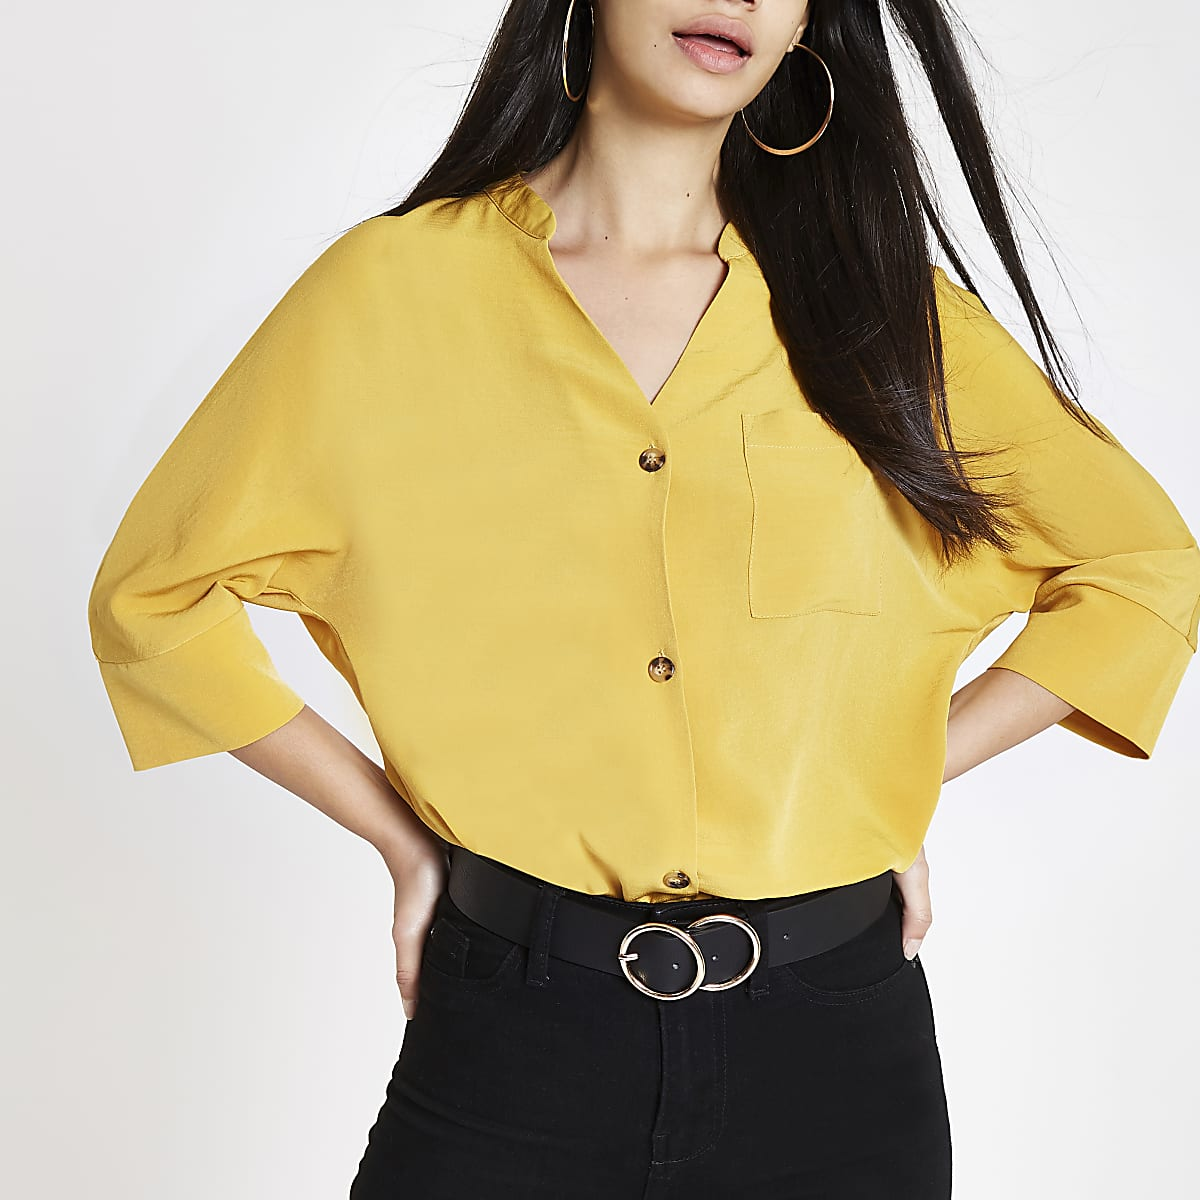 c960bae7 Yellow button up v neck blouse - Blouses - Tops - women